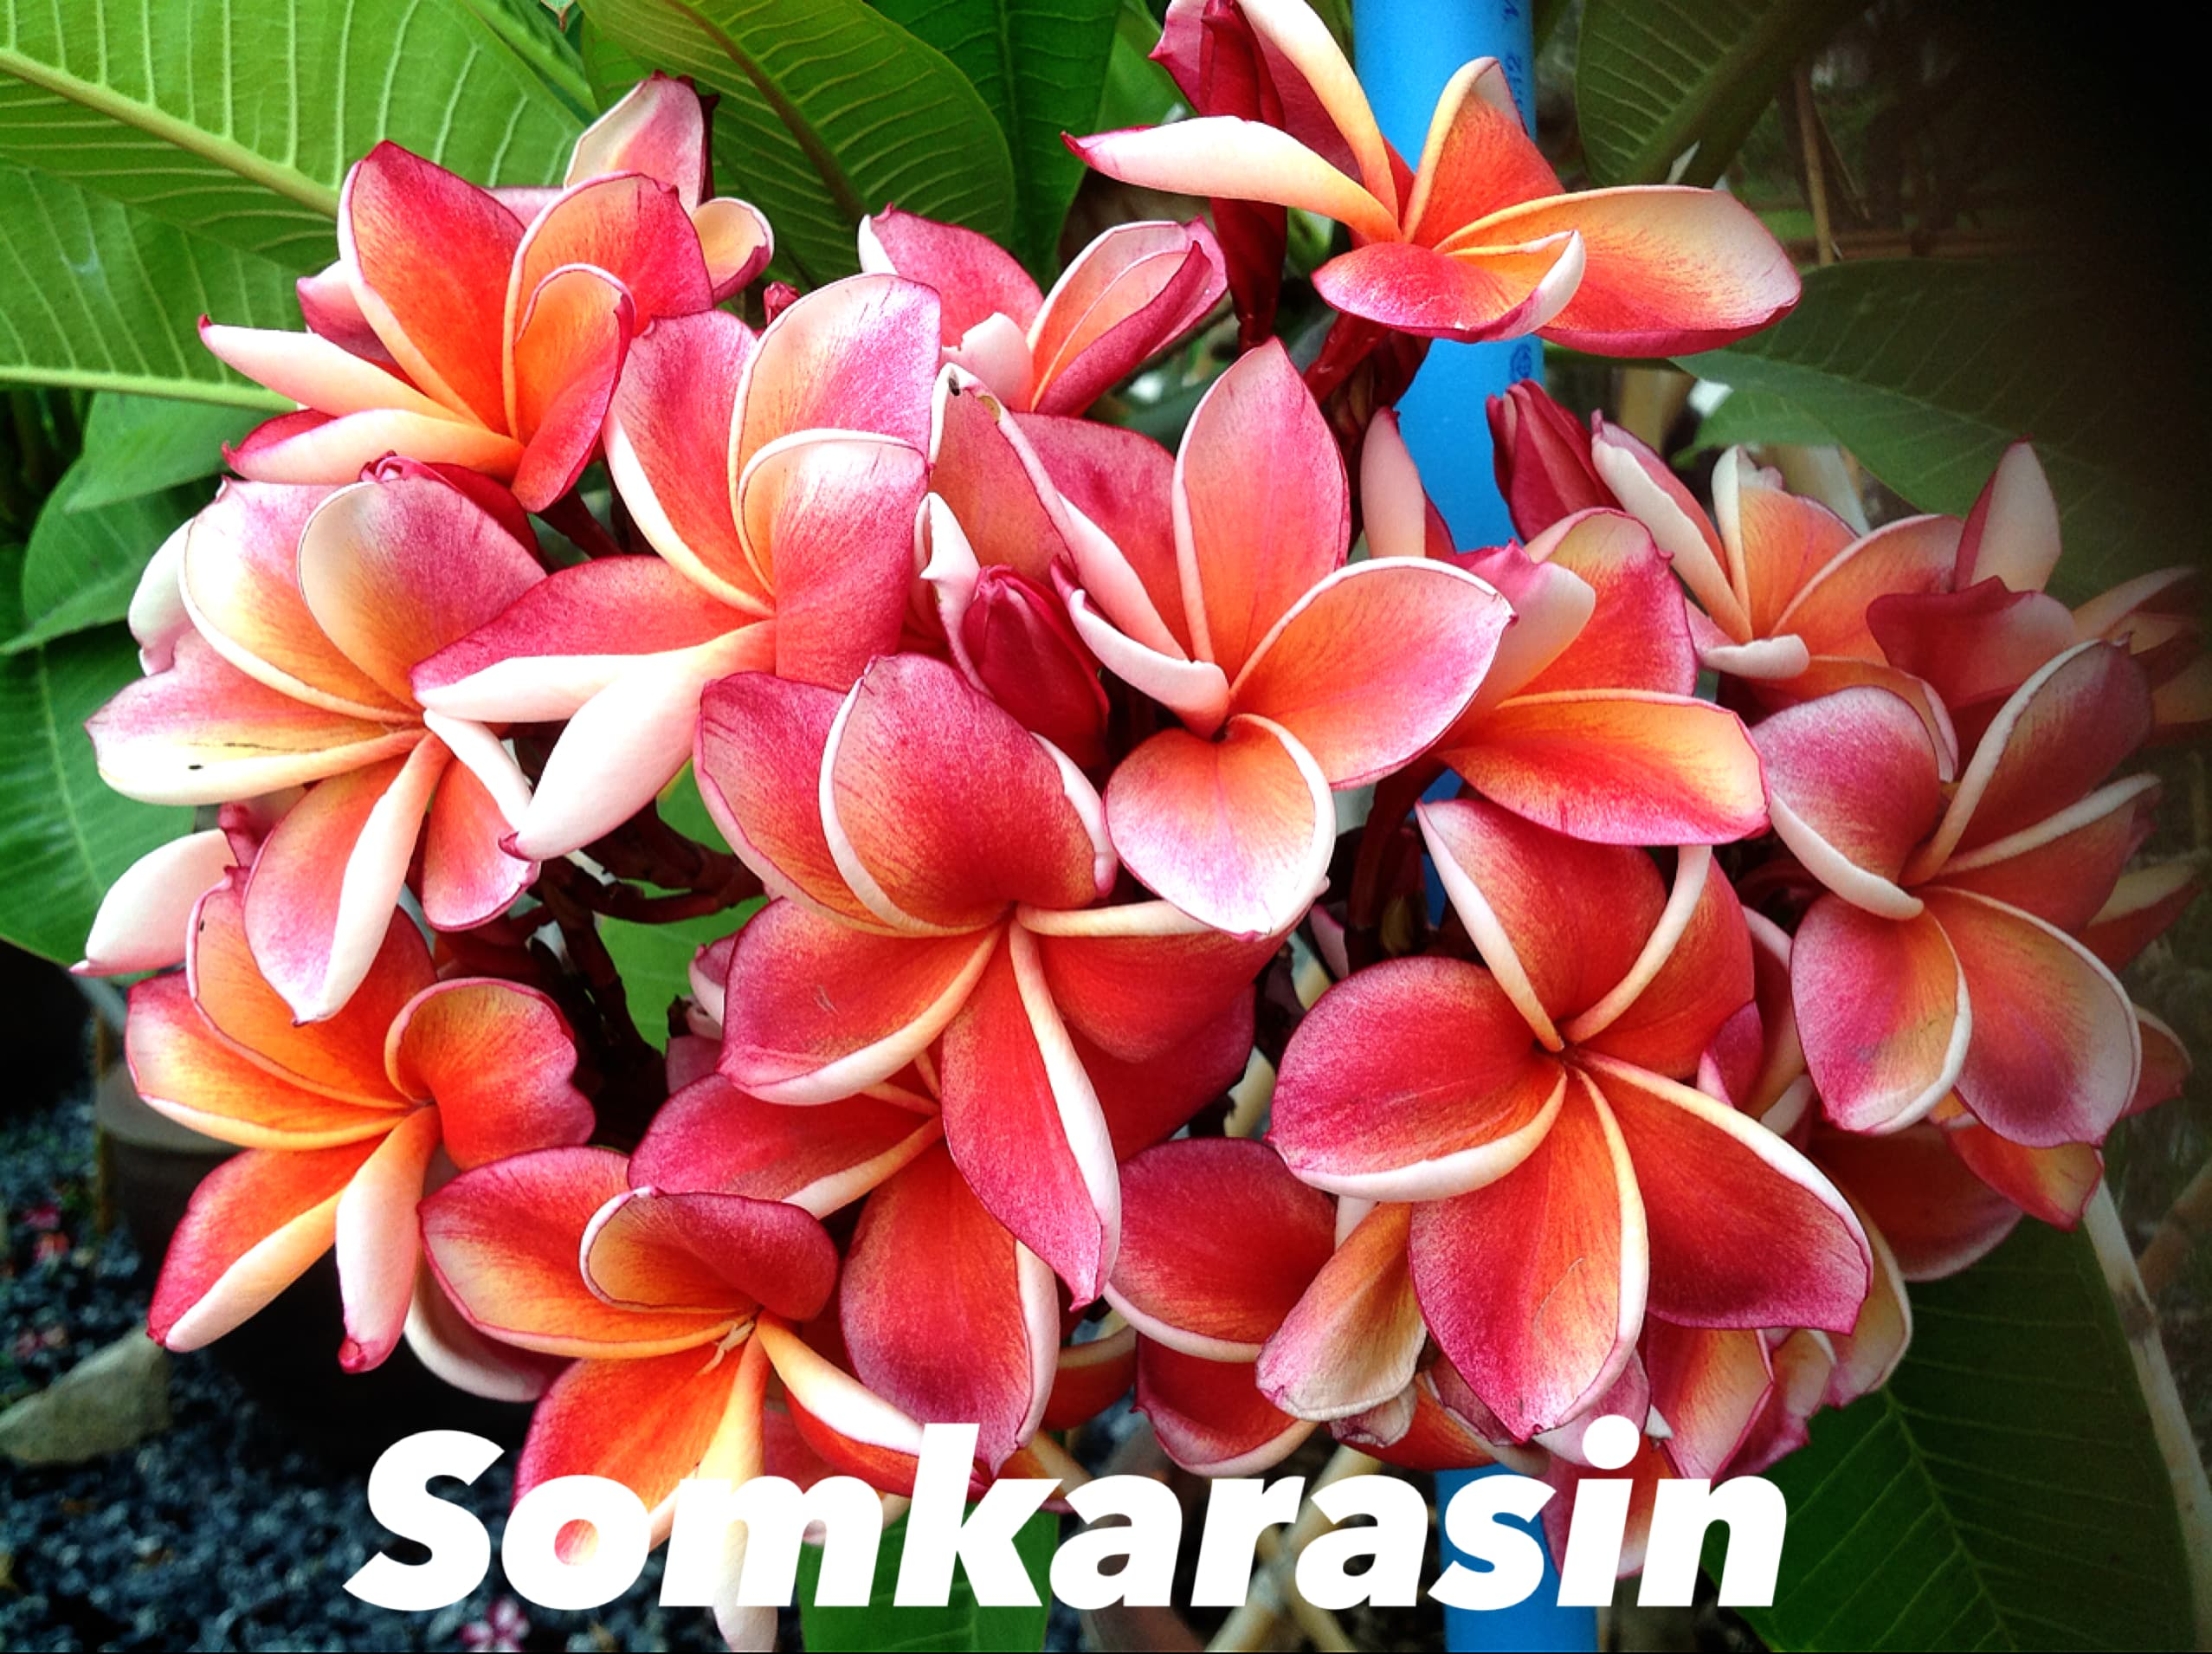 Growing Plumeria (Frangipani) indoors in containers. Part2/5